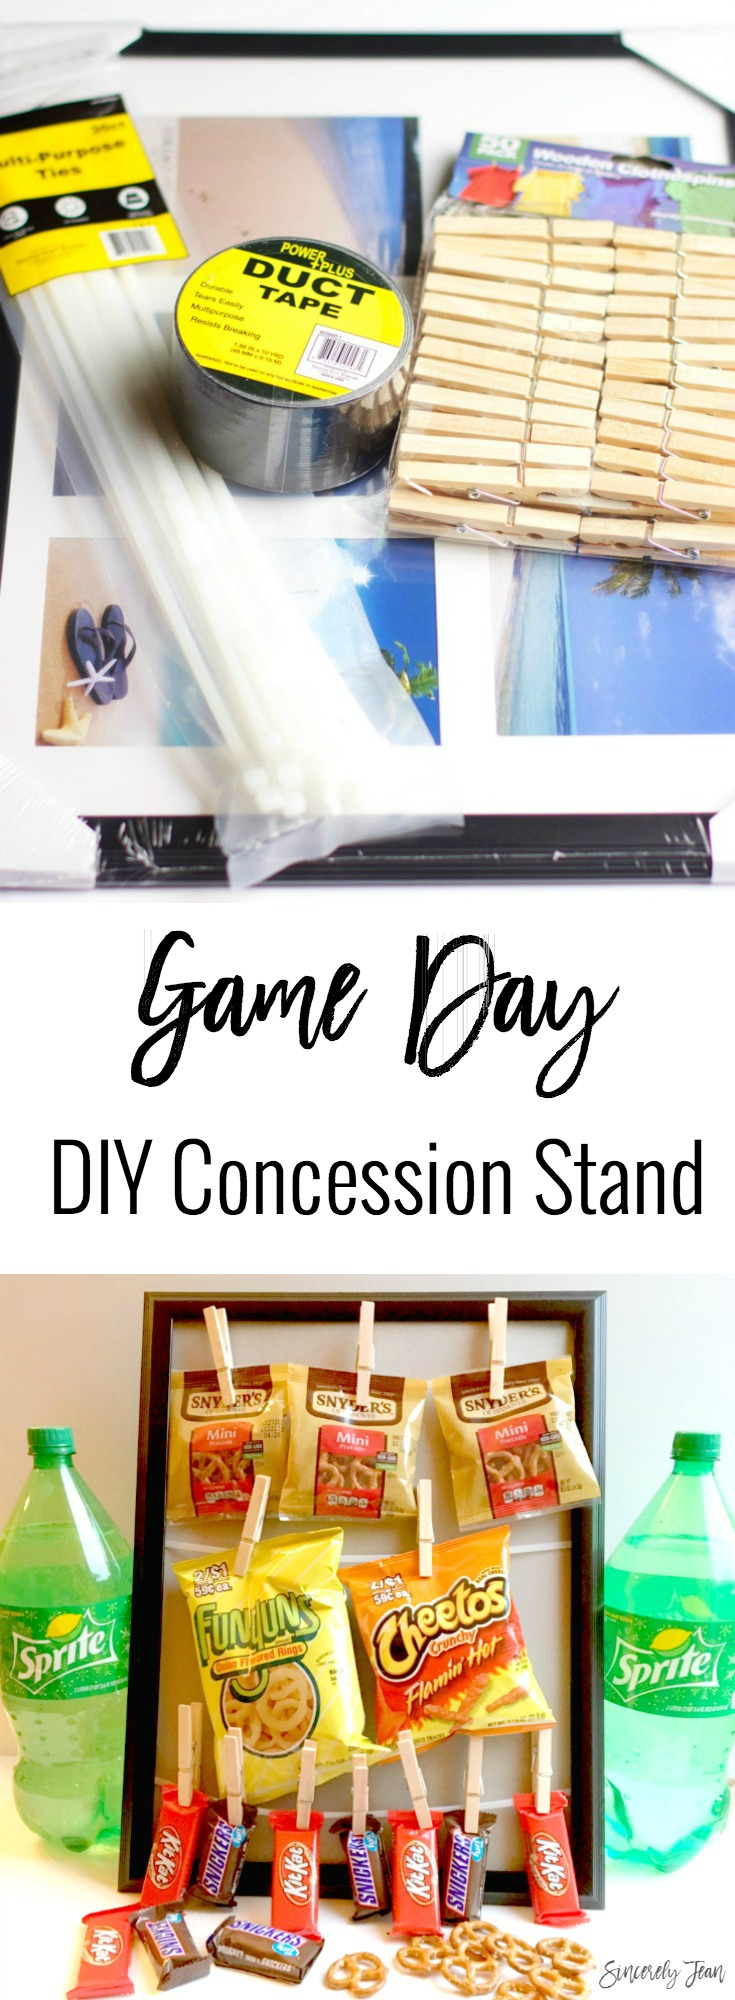 Decorations for Superbowl! DIY Concessions Stand Tutorial by SincerelyJean.com